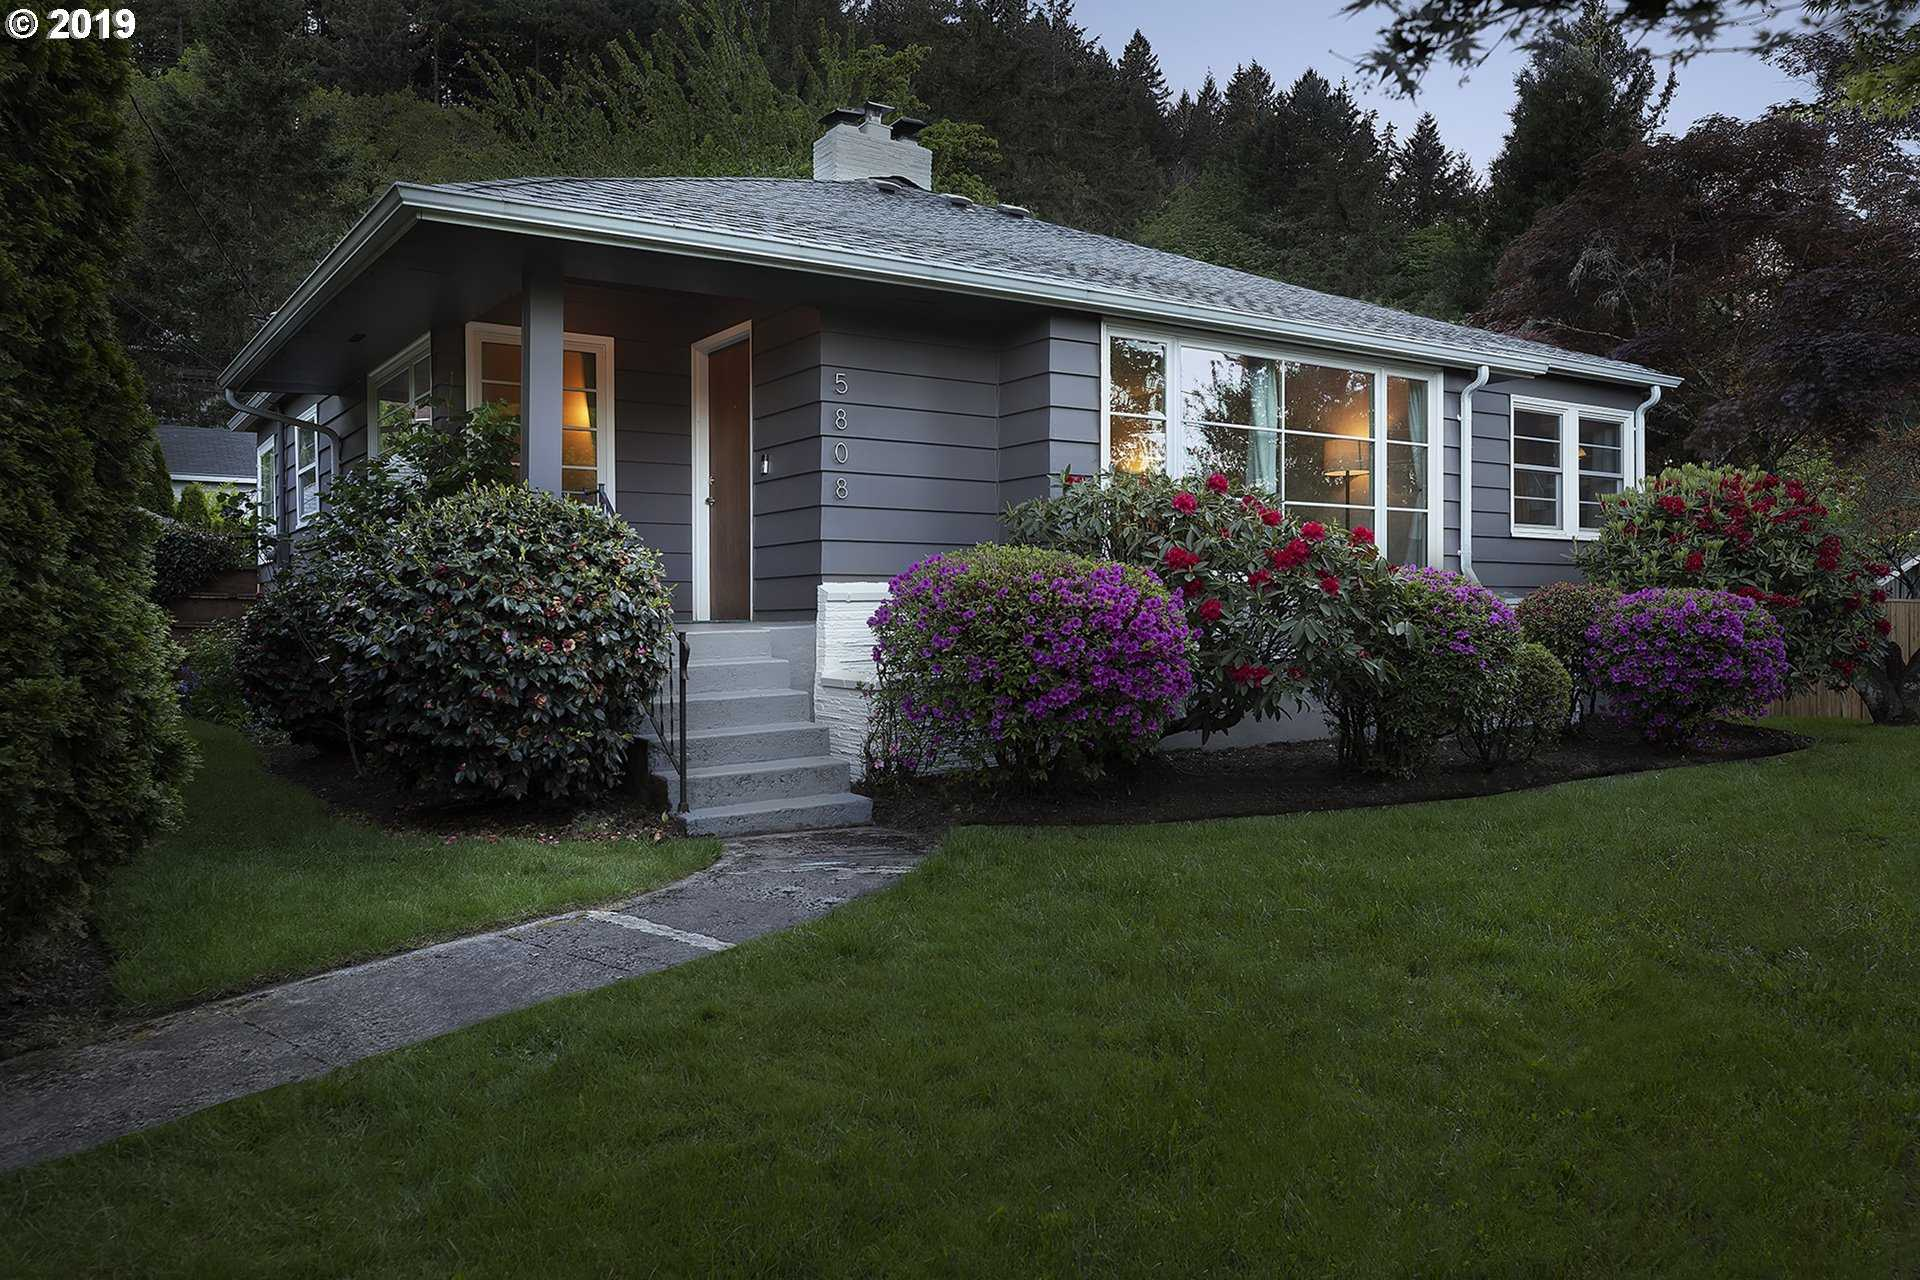 $454,999 - 3Br/2Ba -  for Sale in West Linn